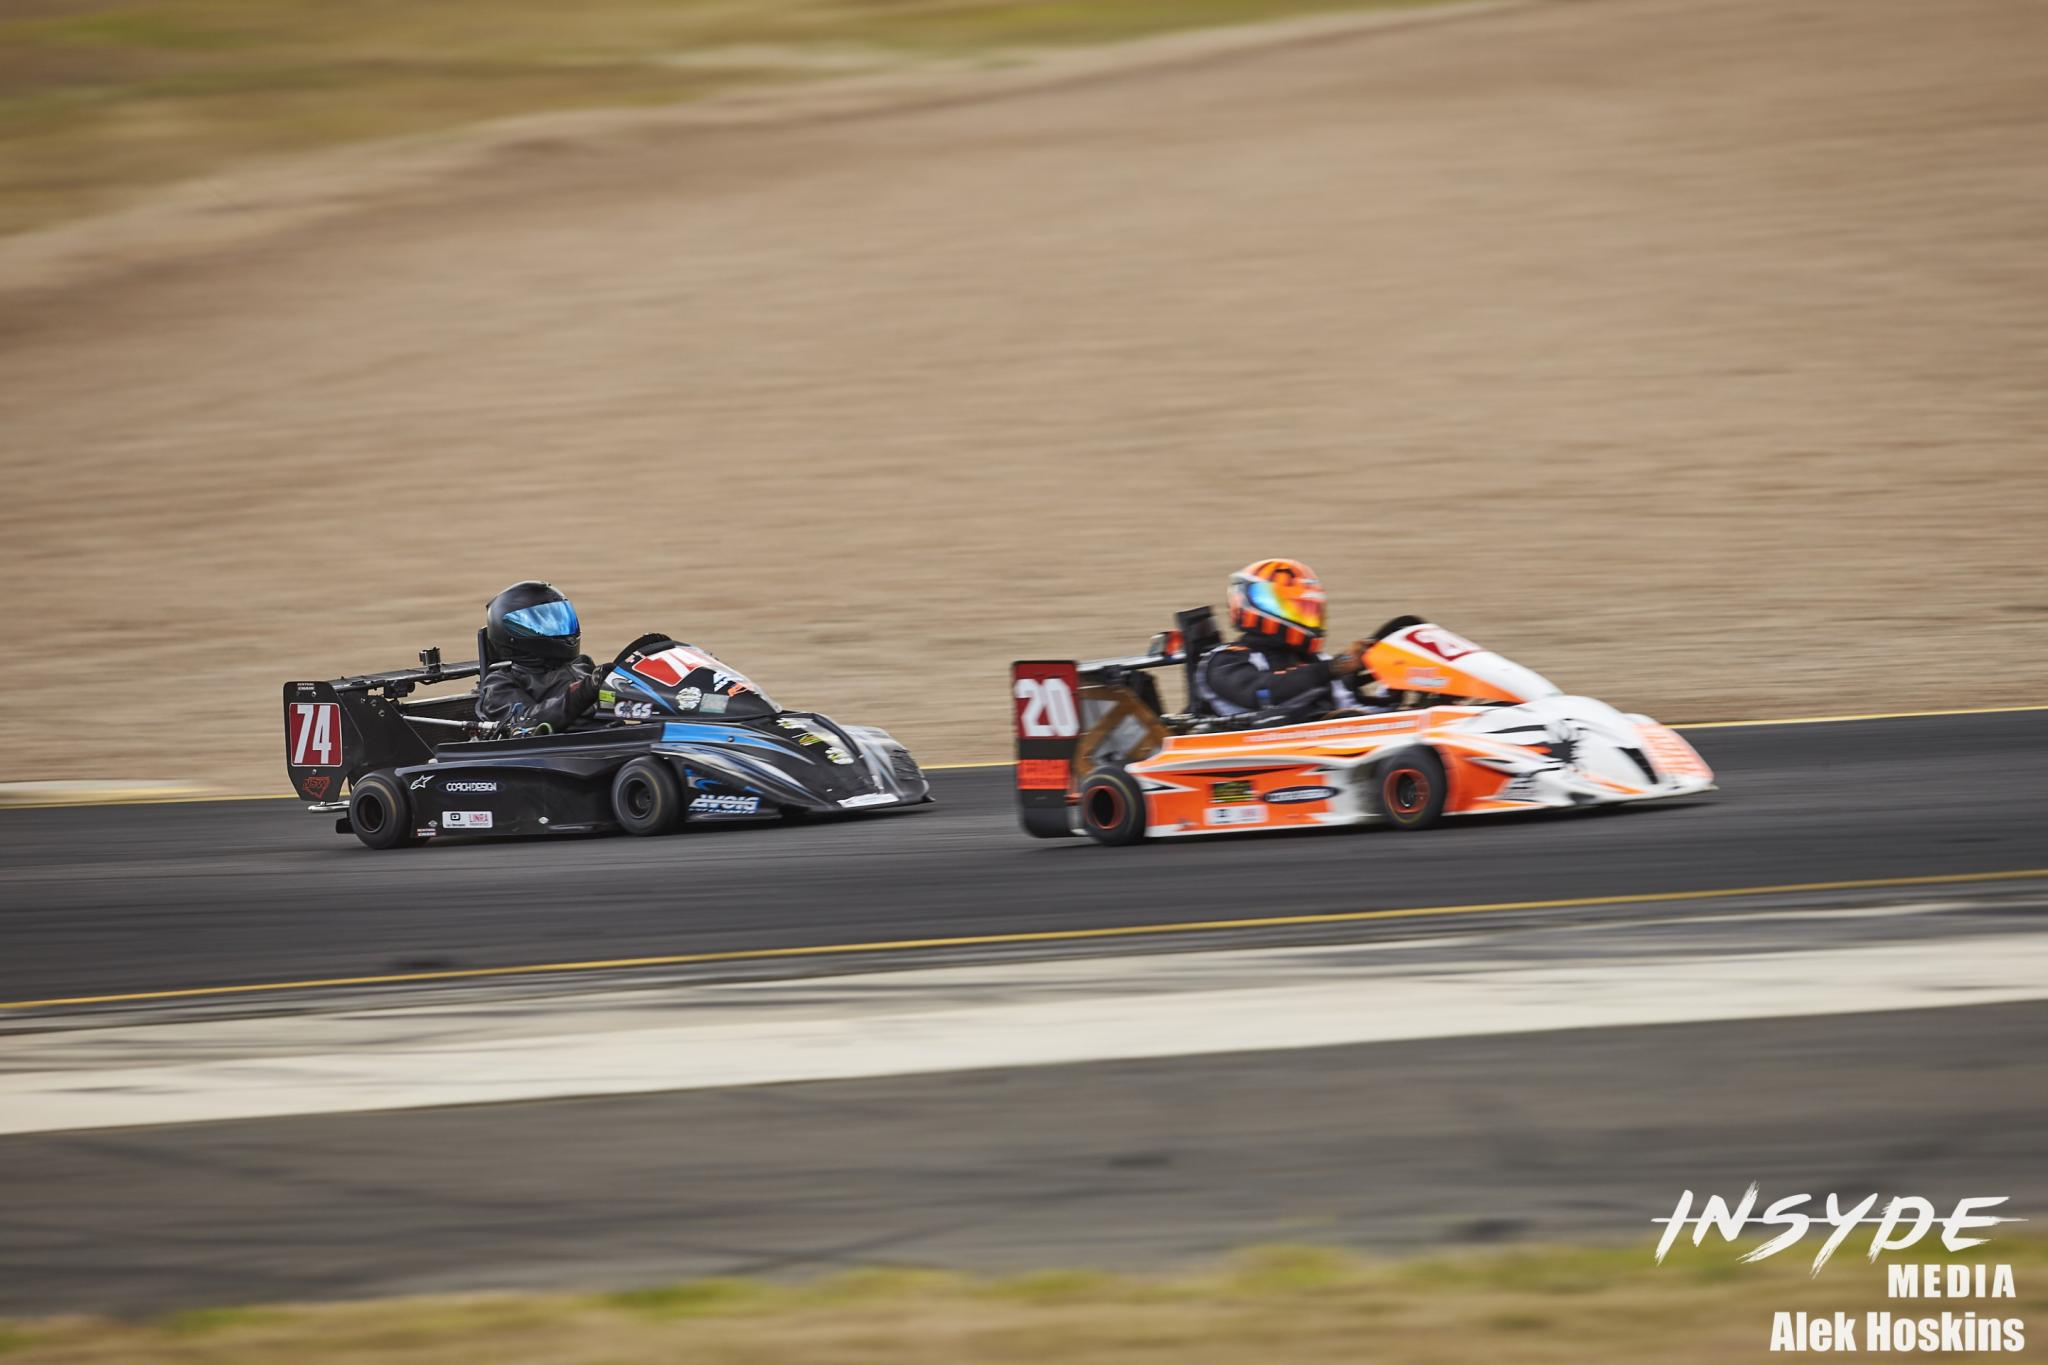 NSW Motor Racing Champs at Sydney Motorsport Park - 2019